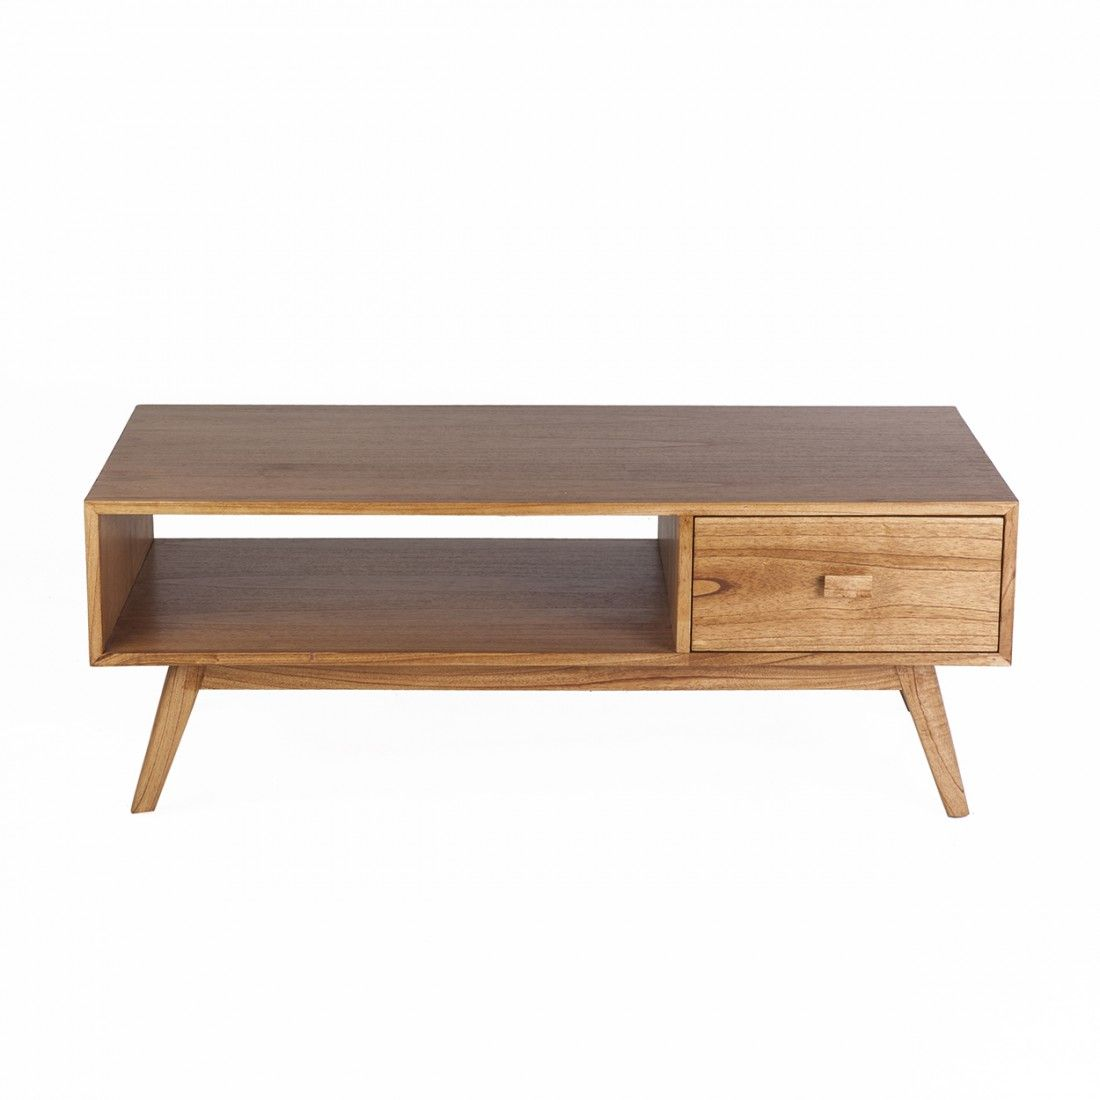 Krugman coffee table with storage storage ideas coffee and mid